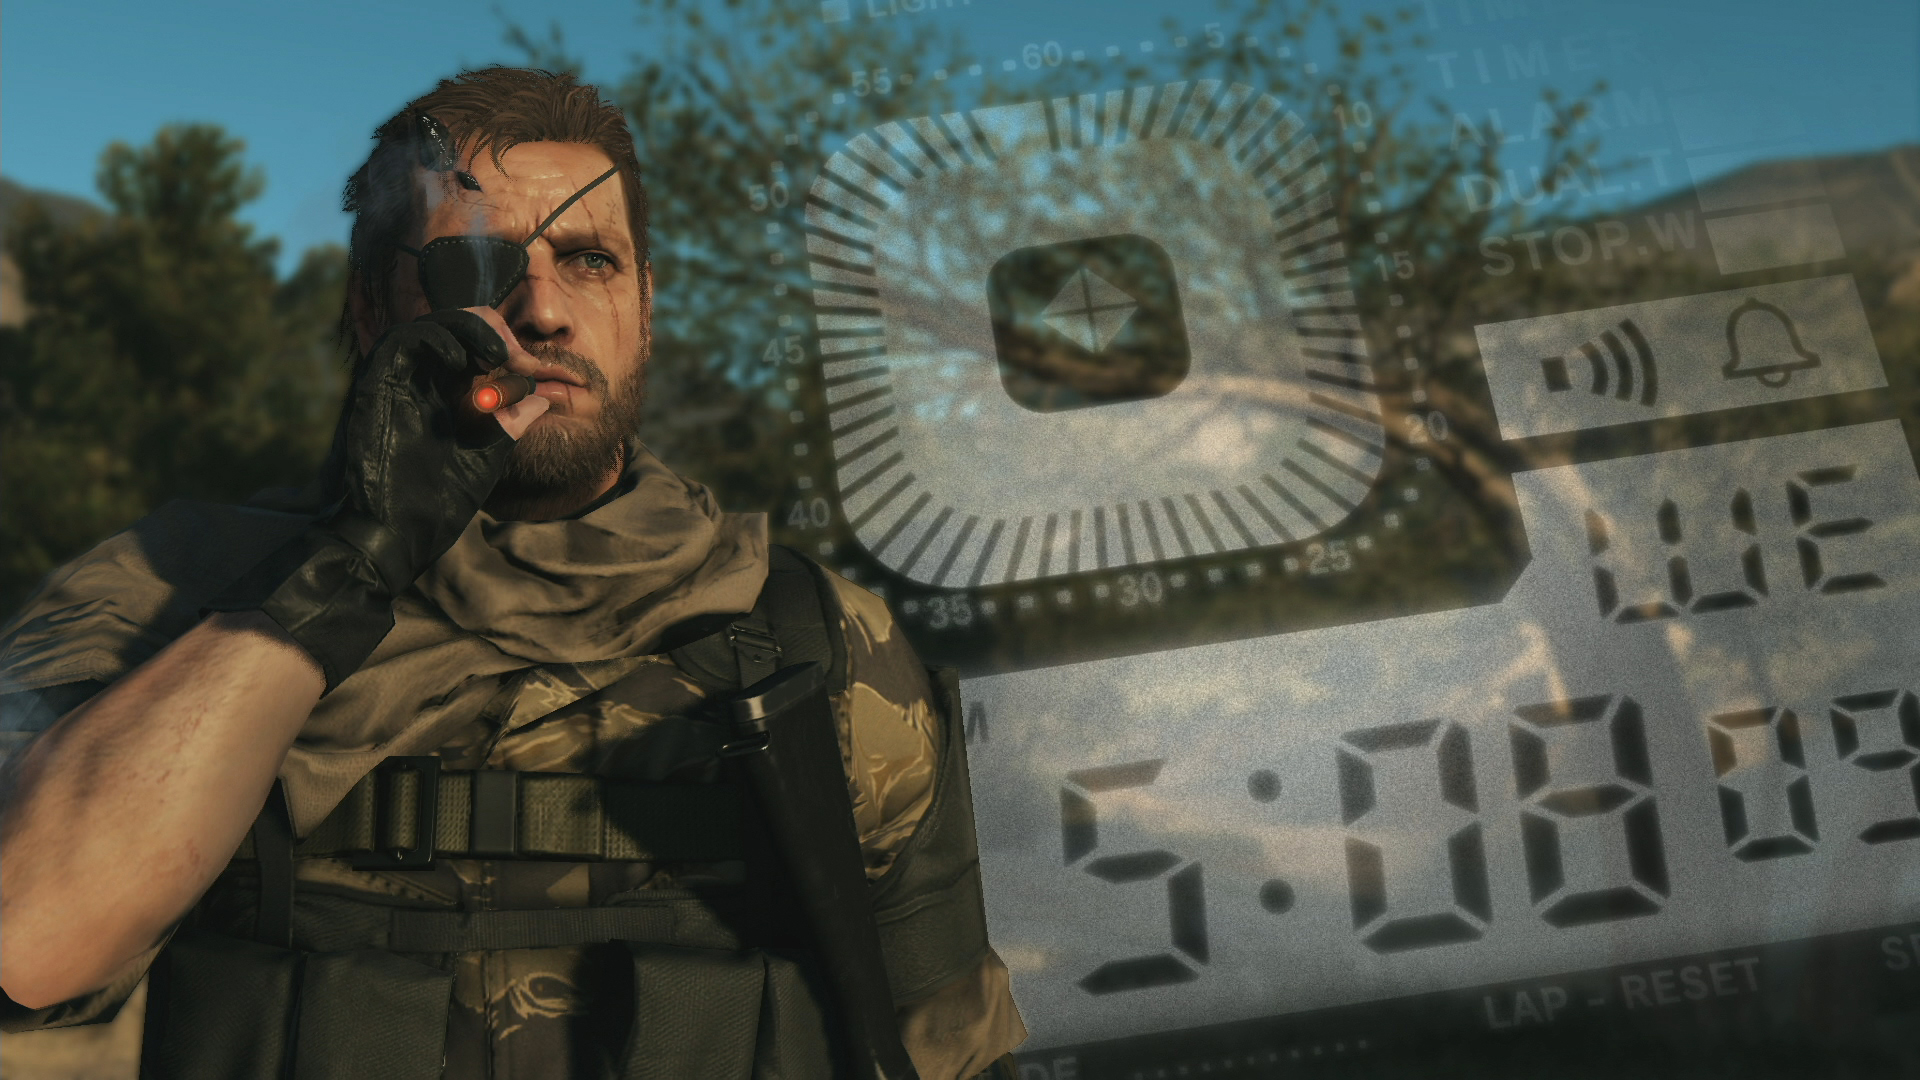 Metal Gear Solid V: Ground Zeroes image 1